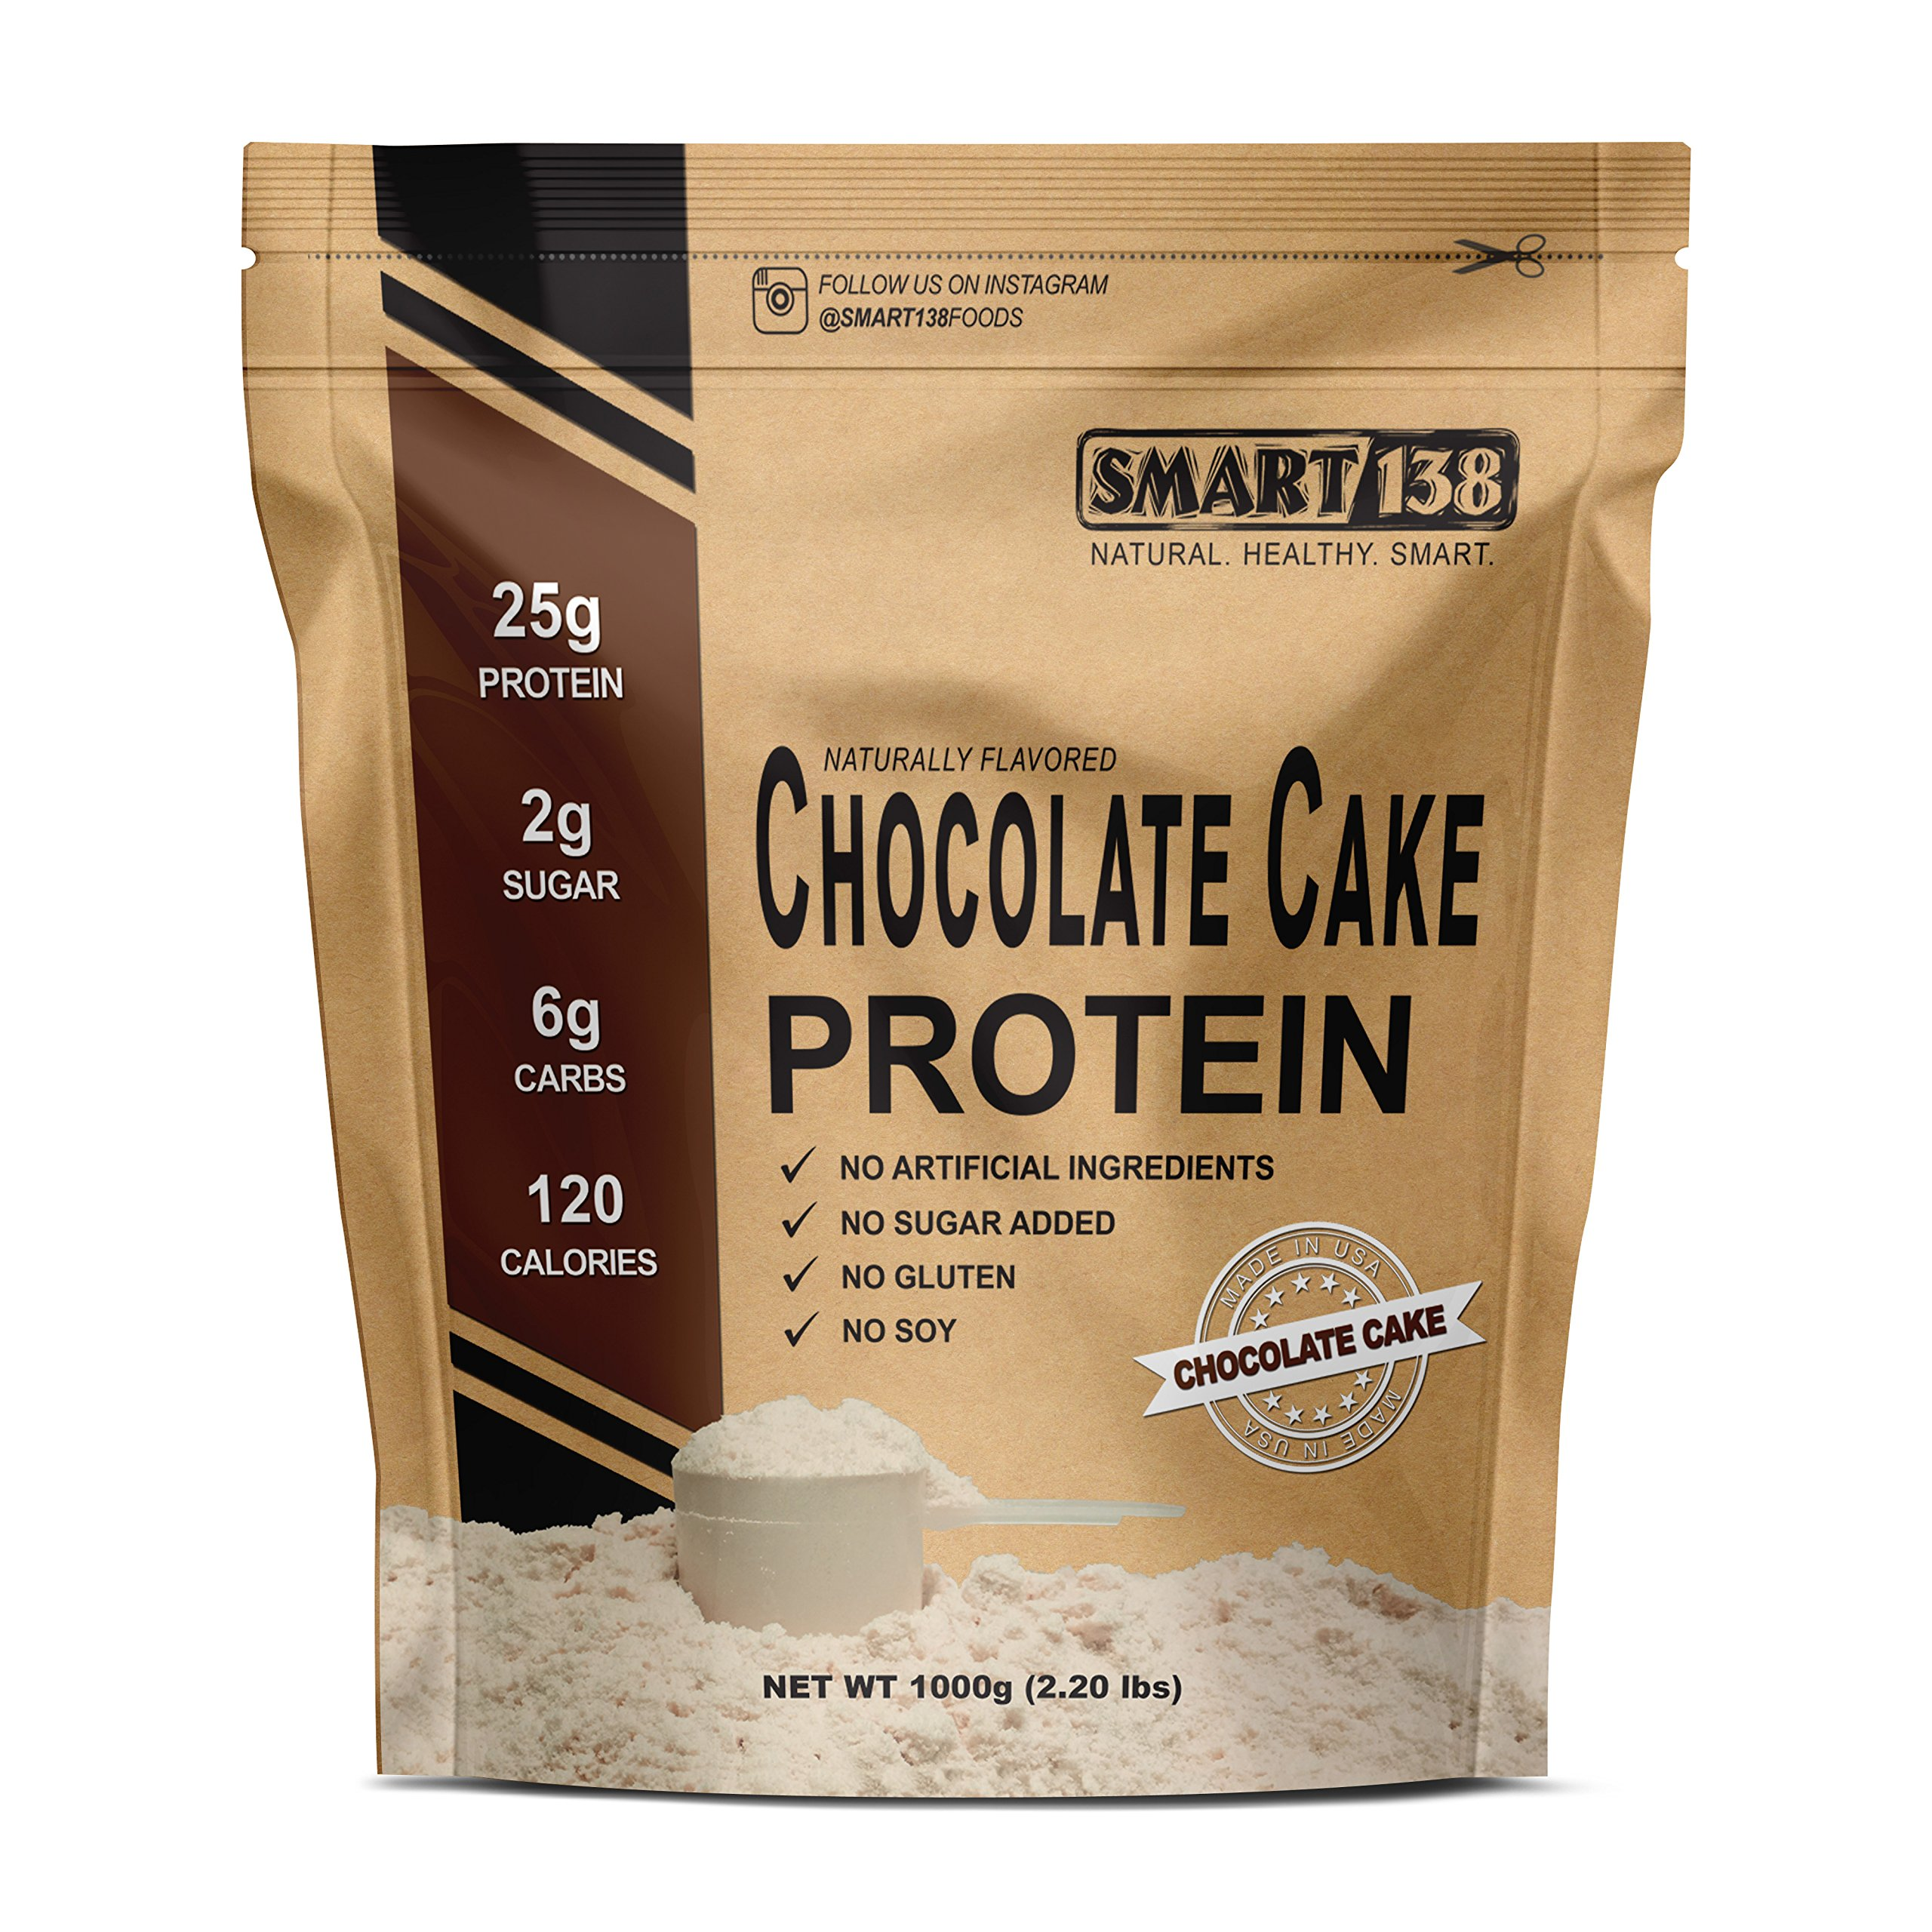 Chocolate Cake Natural Protein Powder, Gluten-Free, Soy-Free, USA, Keto (Low Carb), Natural BCAAs by Smart138